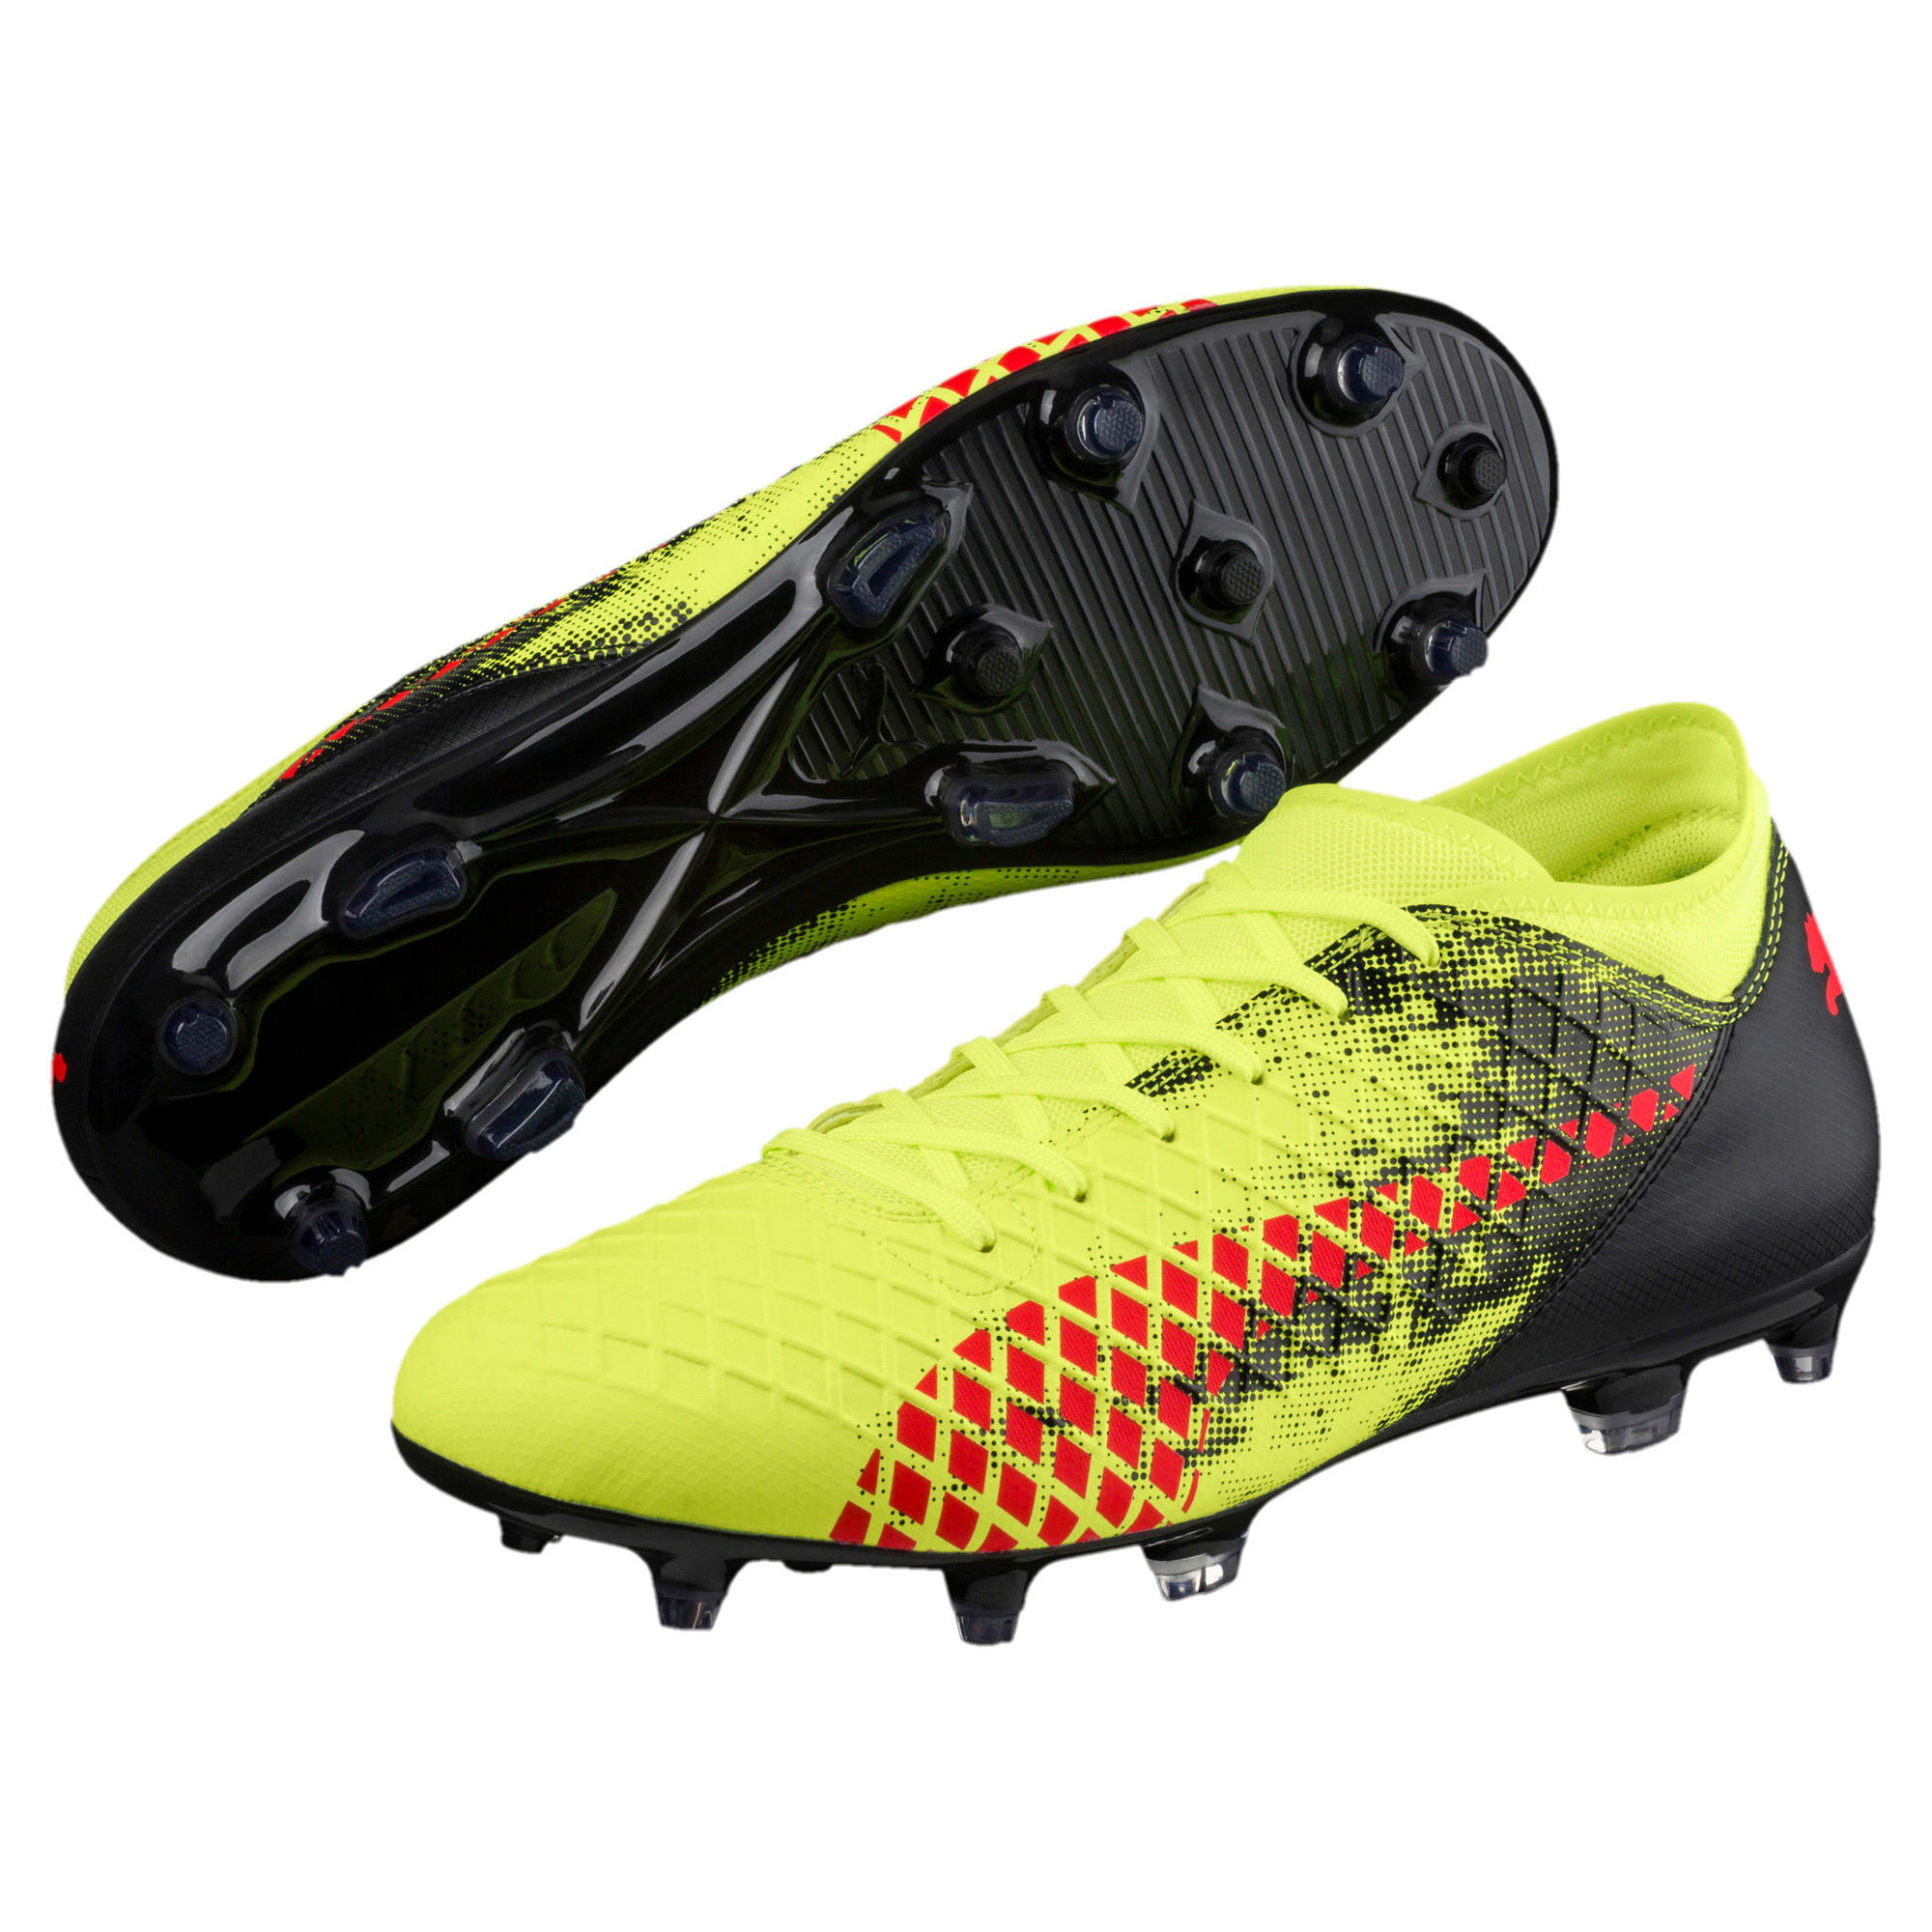 Thumbnail 2 of FUTURE 18.4 FG/AG Men's Football Boots, Yellow-Red-Black, medium-IND